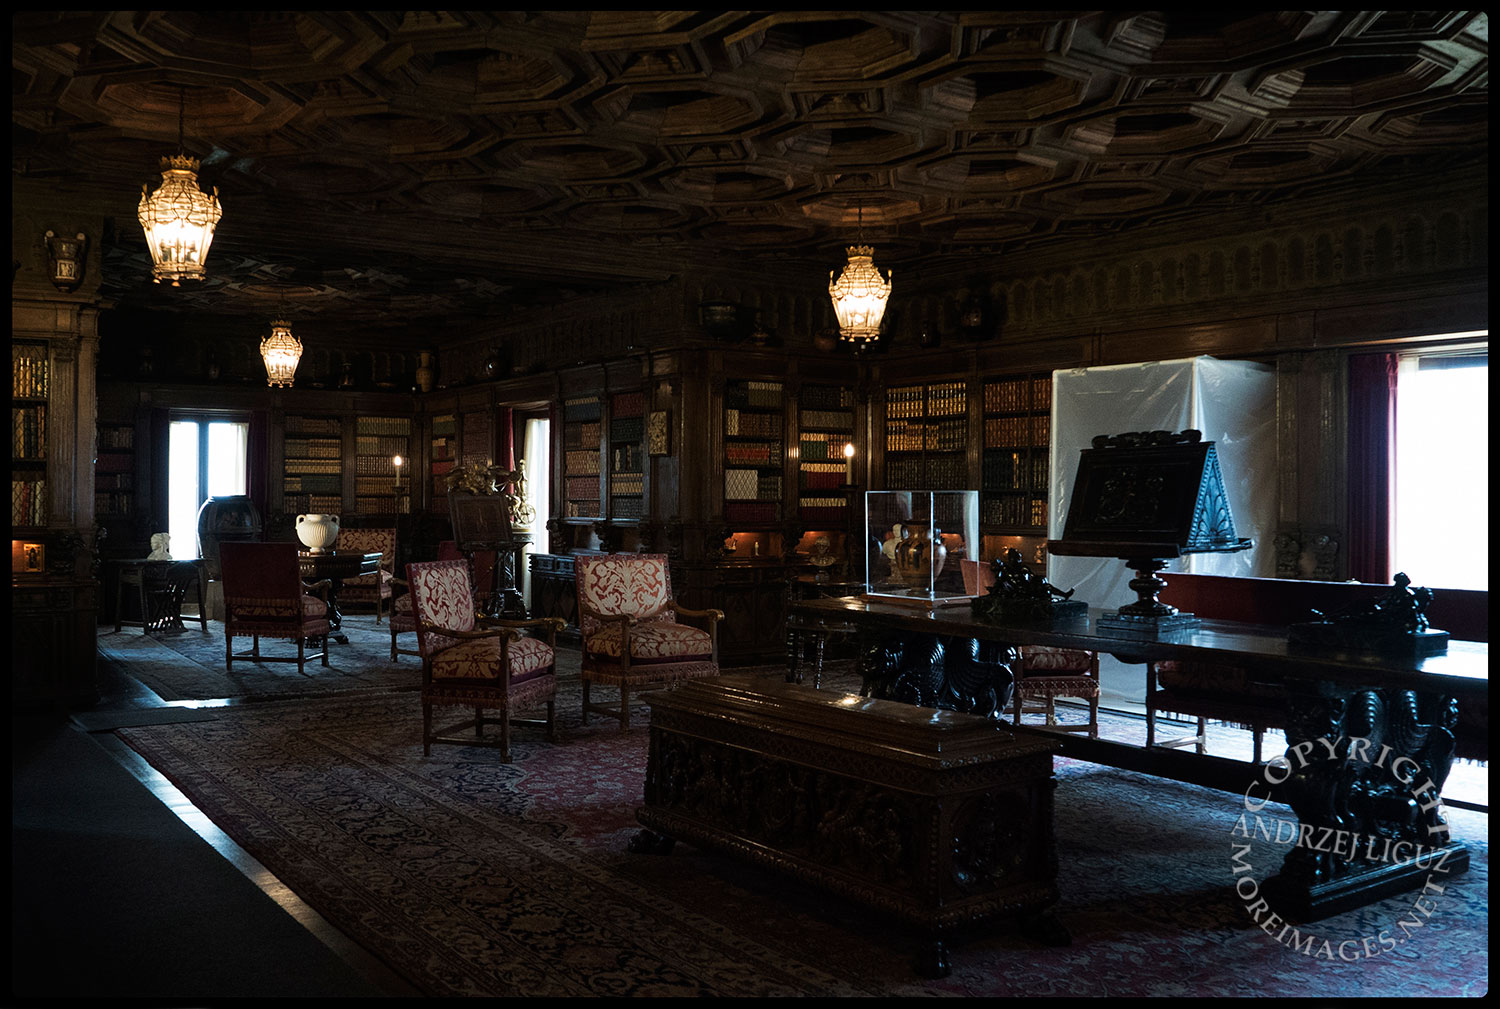 The Library, Hearst Castle, San Simeon, CA 2015-03-02